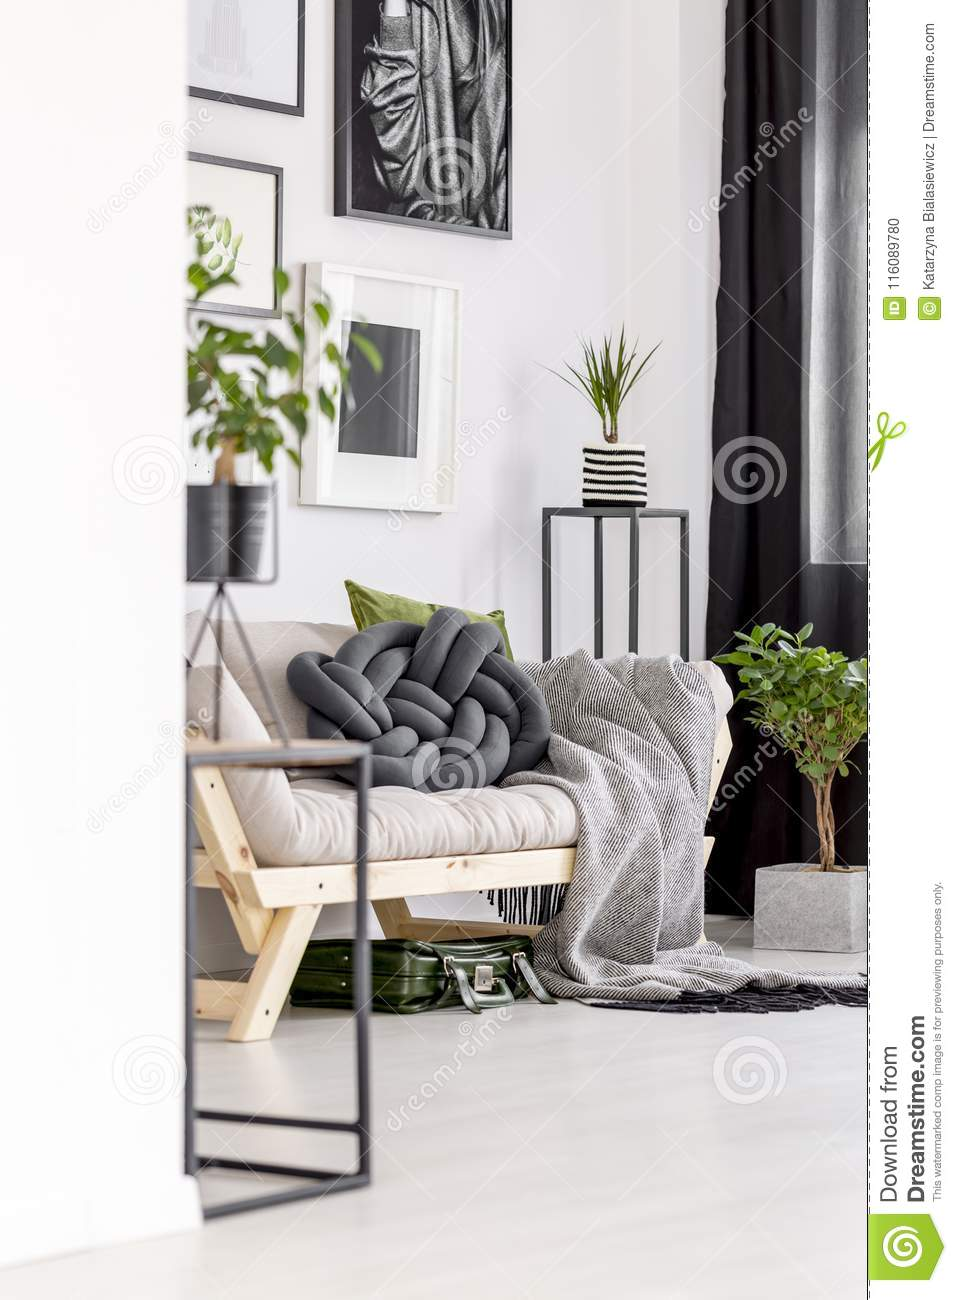 Green Accents In Living Room Stock Photo - Image of design, futon ...